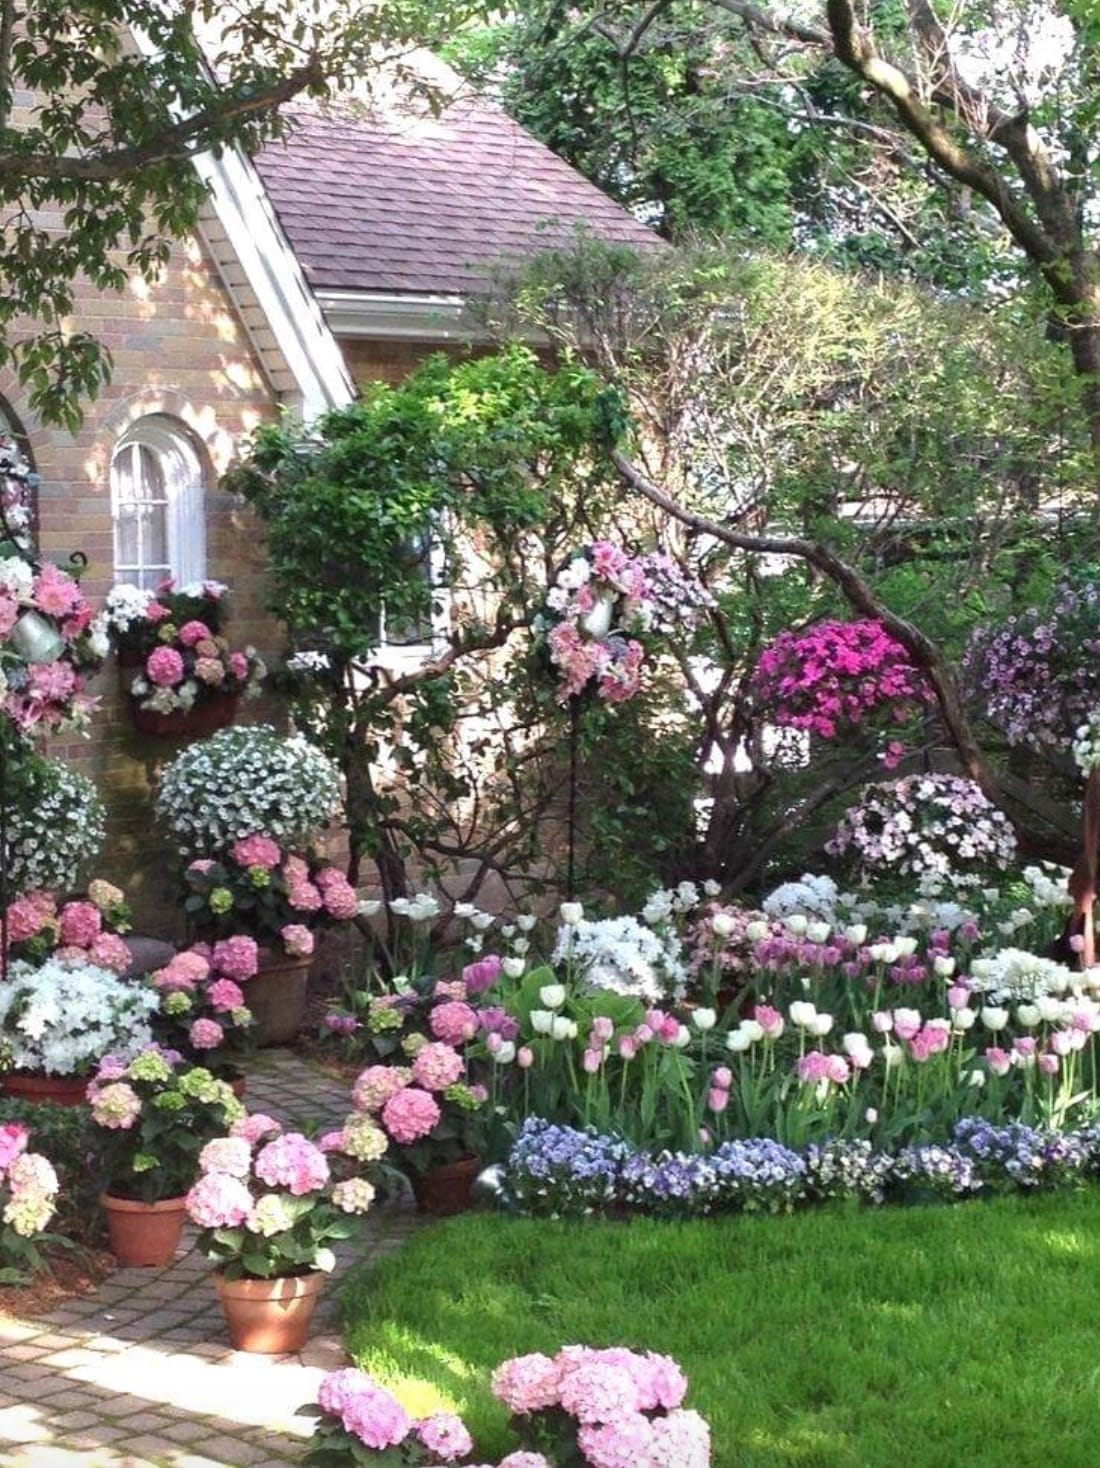 Best cottage style garden ideas for landscaping #15